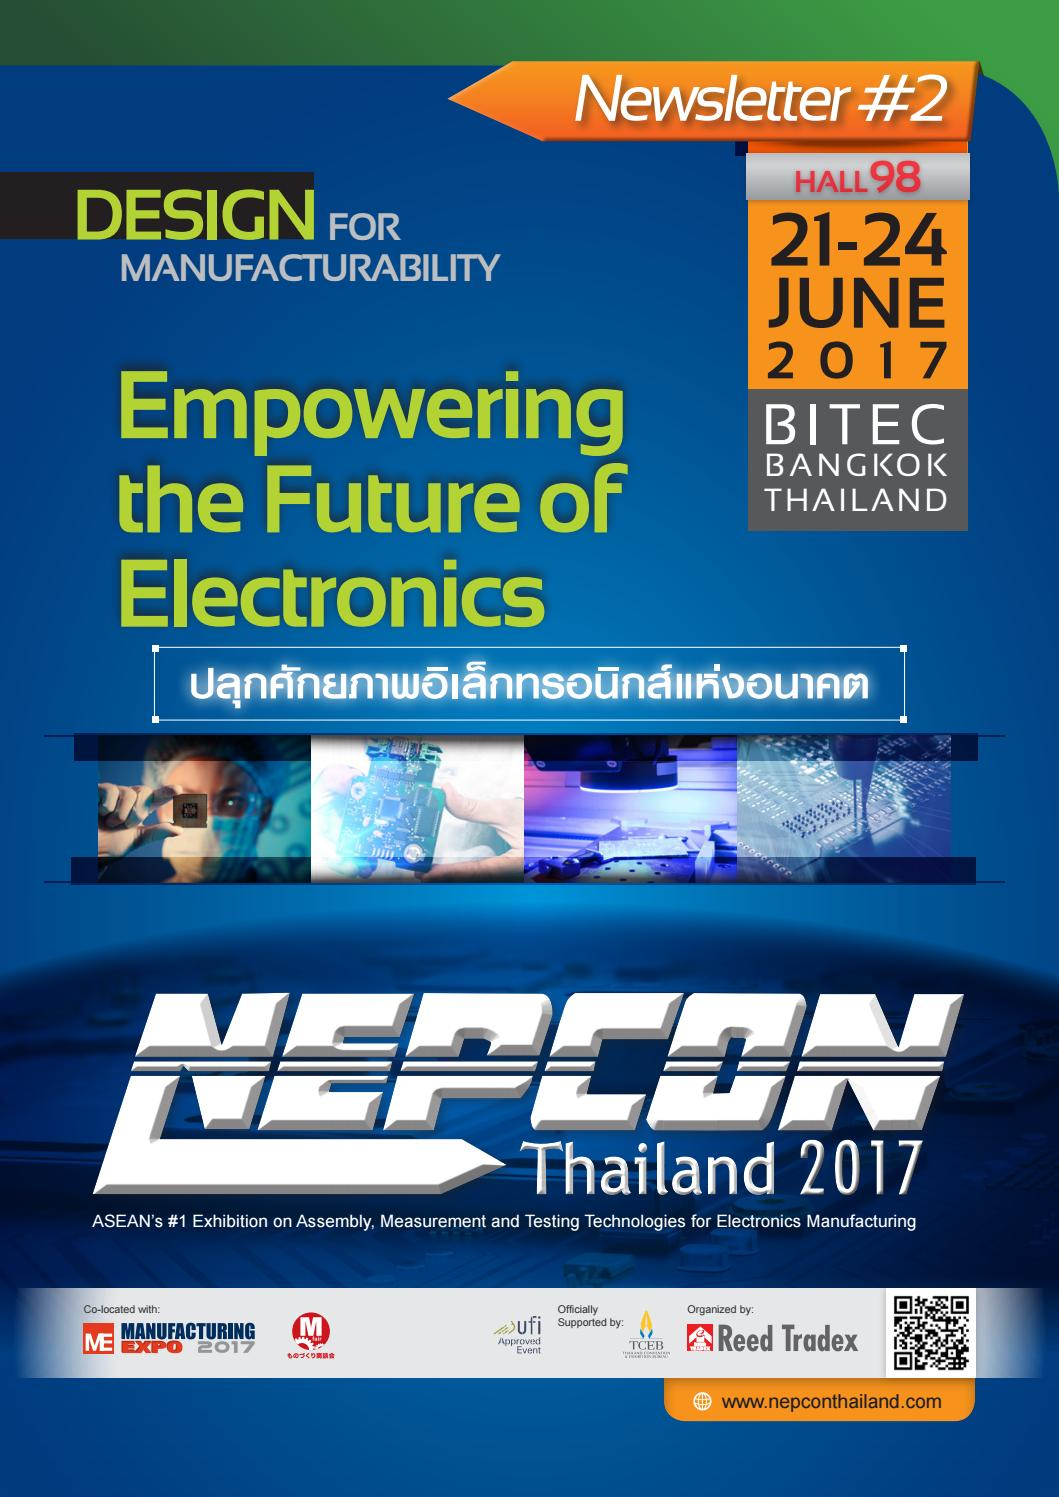 Nepcon 2017 Newsletter 2 By Reed Tradex Co Ltd Issuu Kontakt Pcc Printed Circuit Board Cleaning Spray Esd Shop